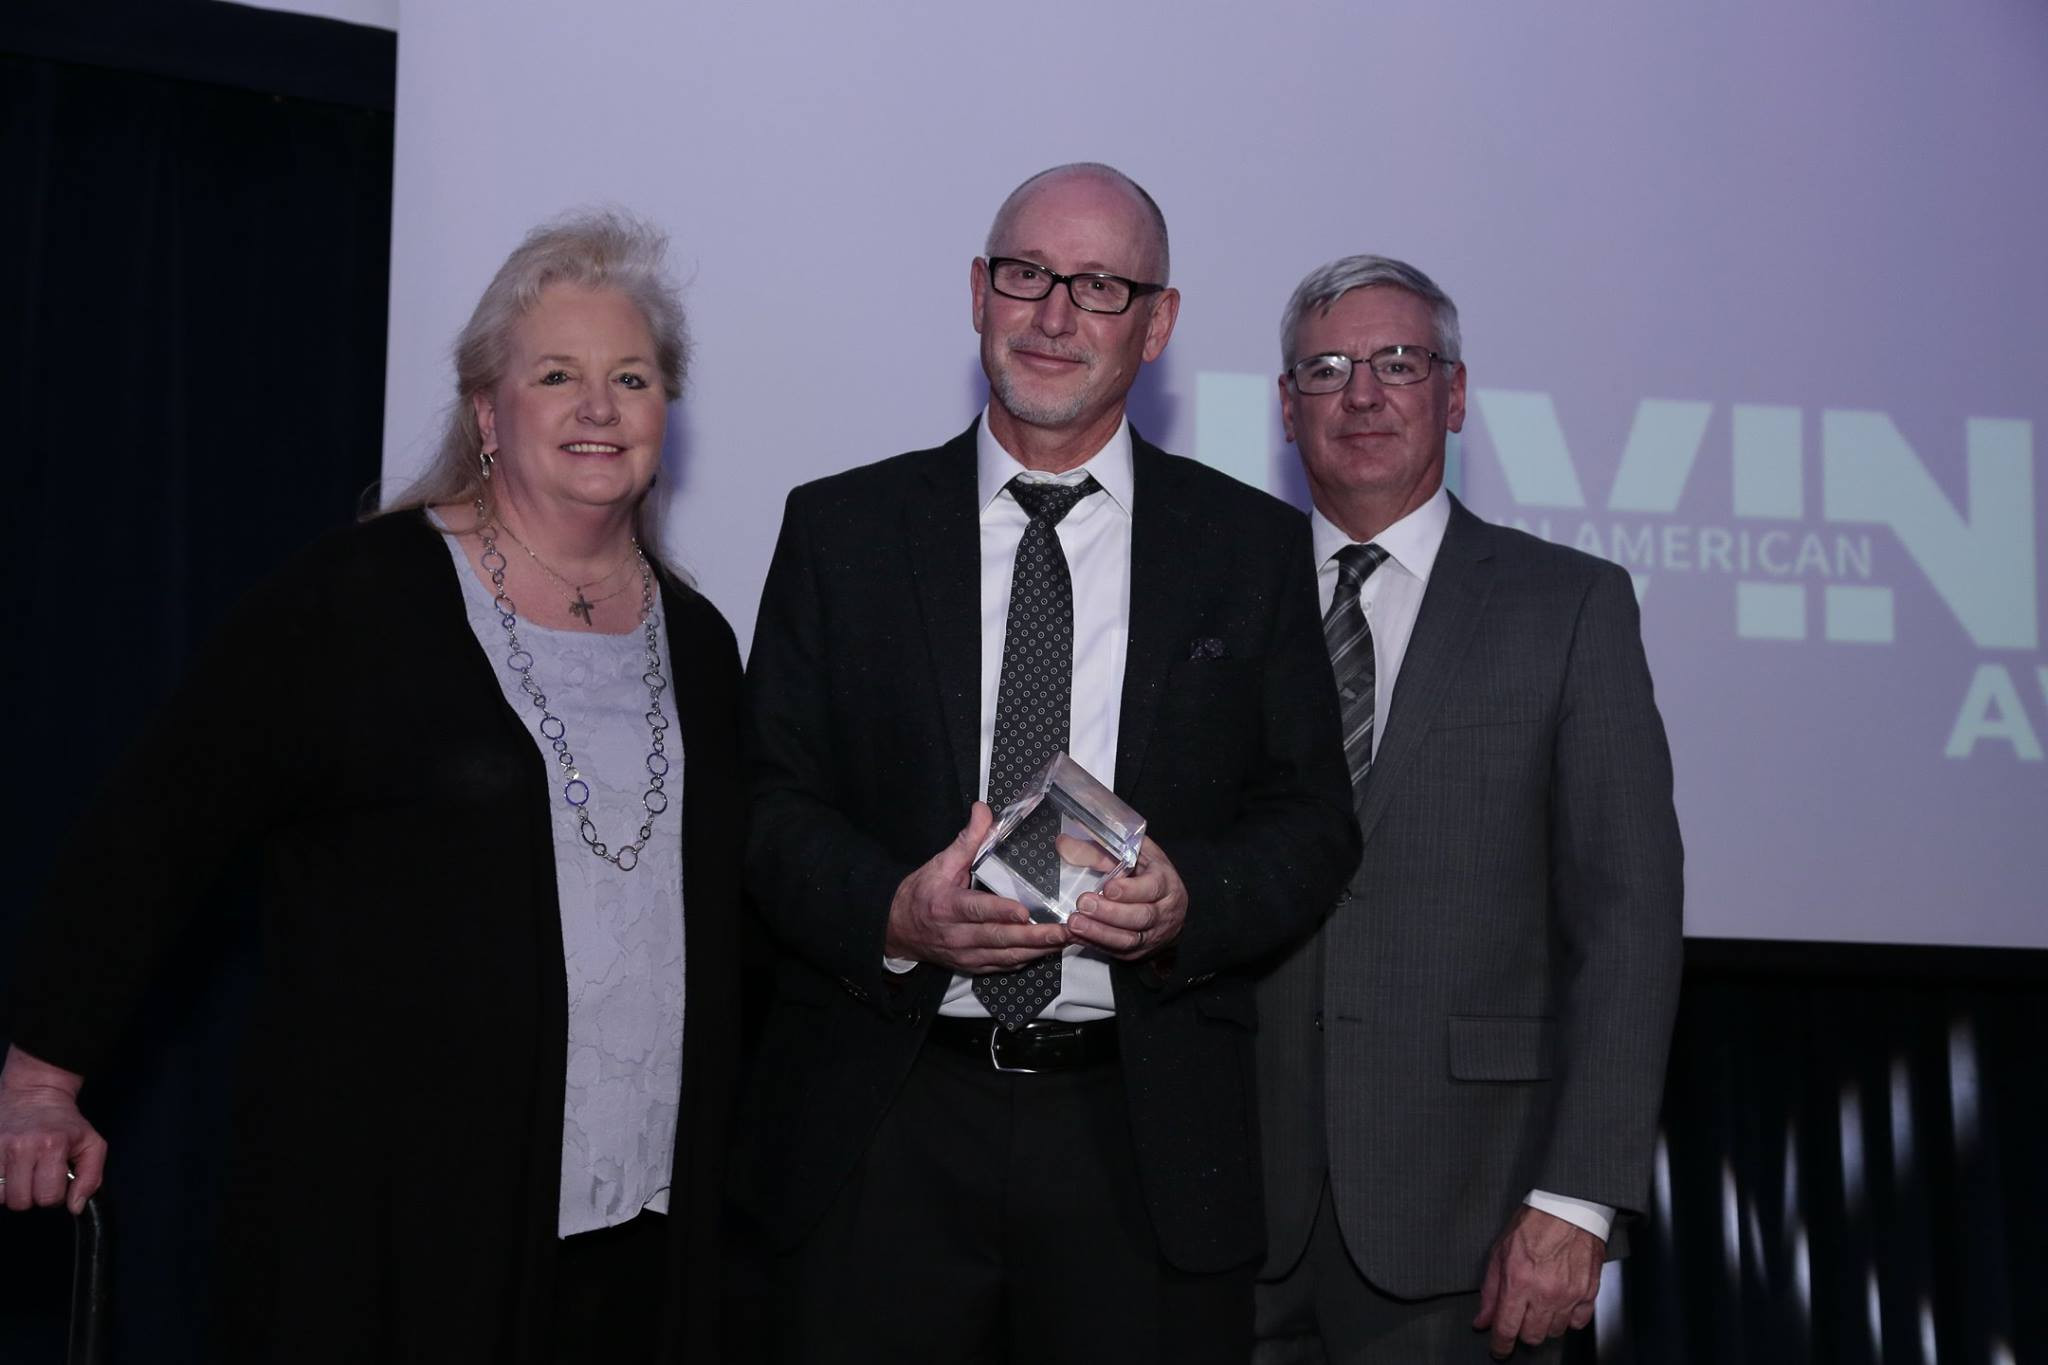 Mike Schaap receives three awards at the Best in American Living Awards Gala on January 20 in Las Vegas.